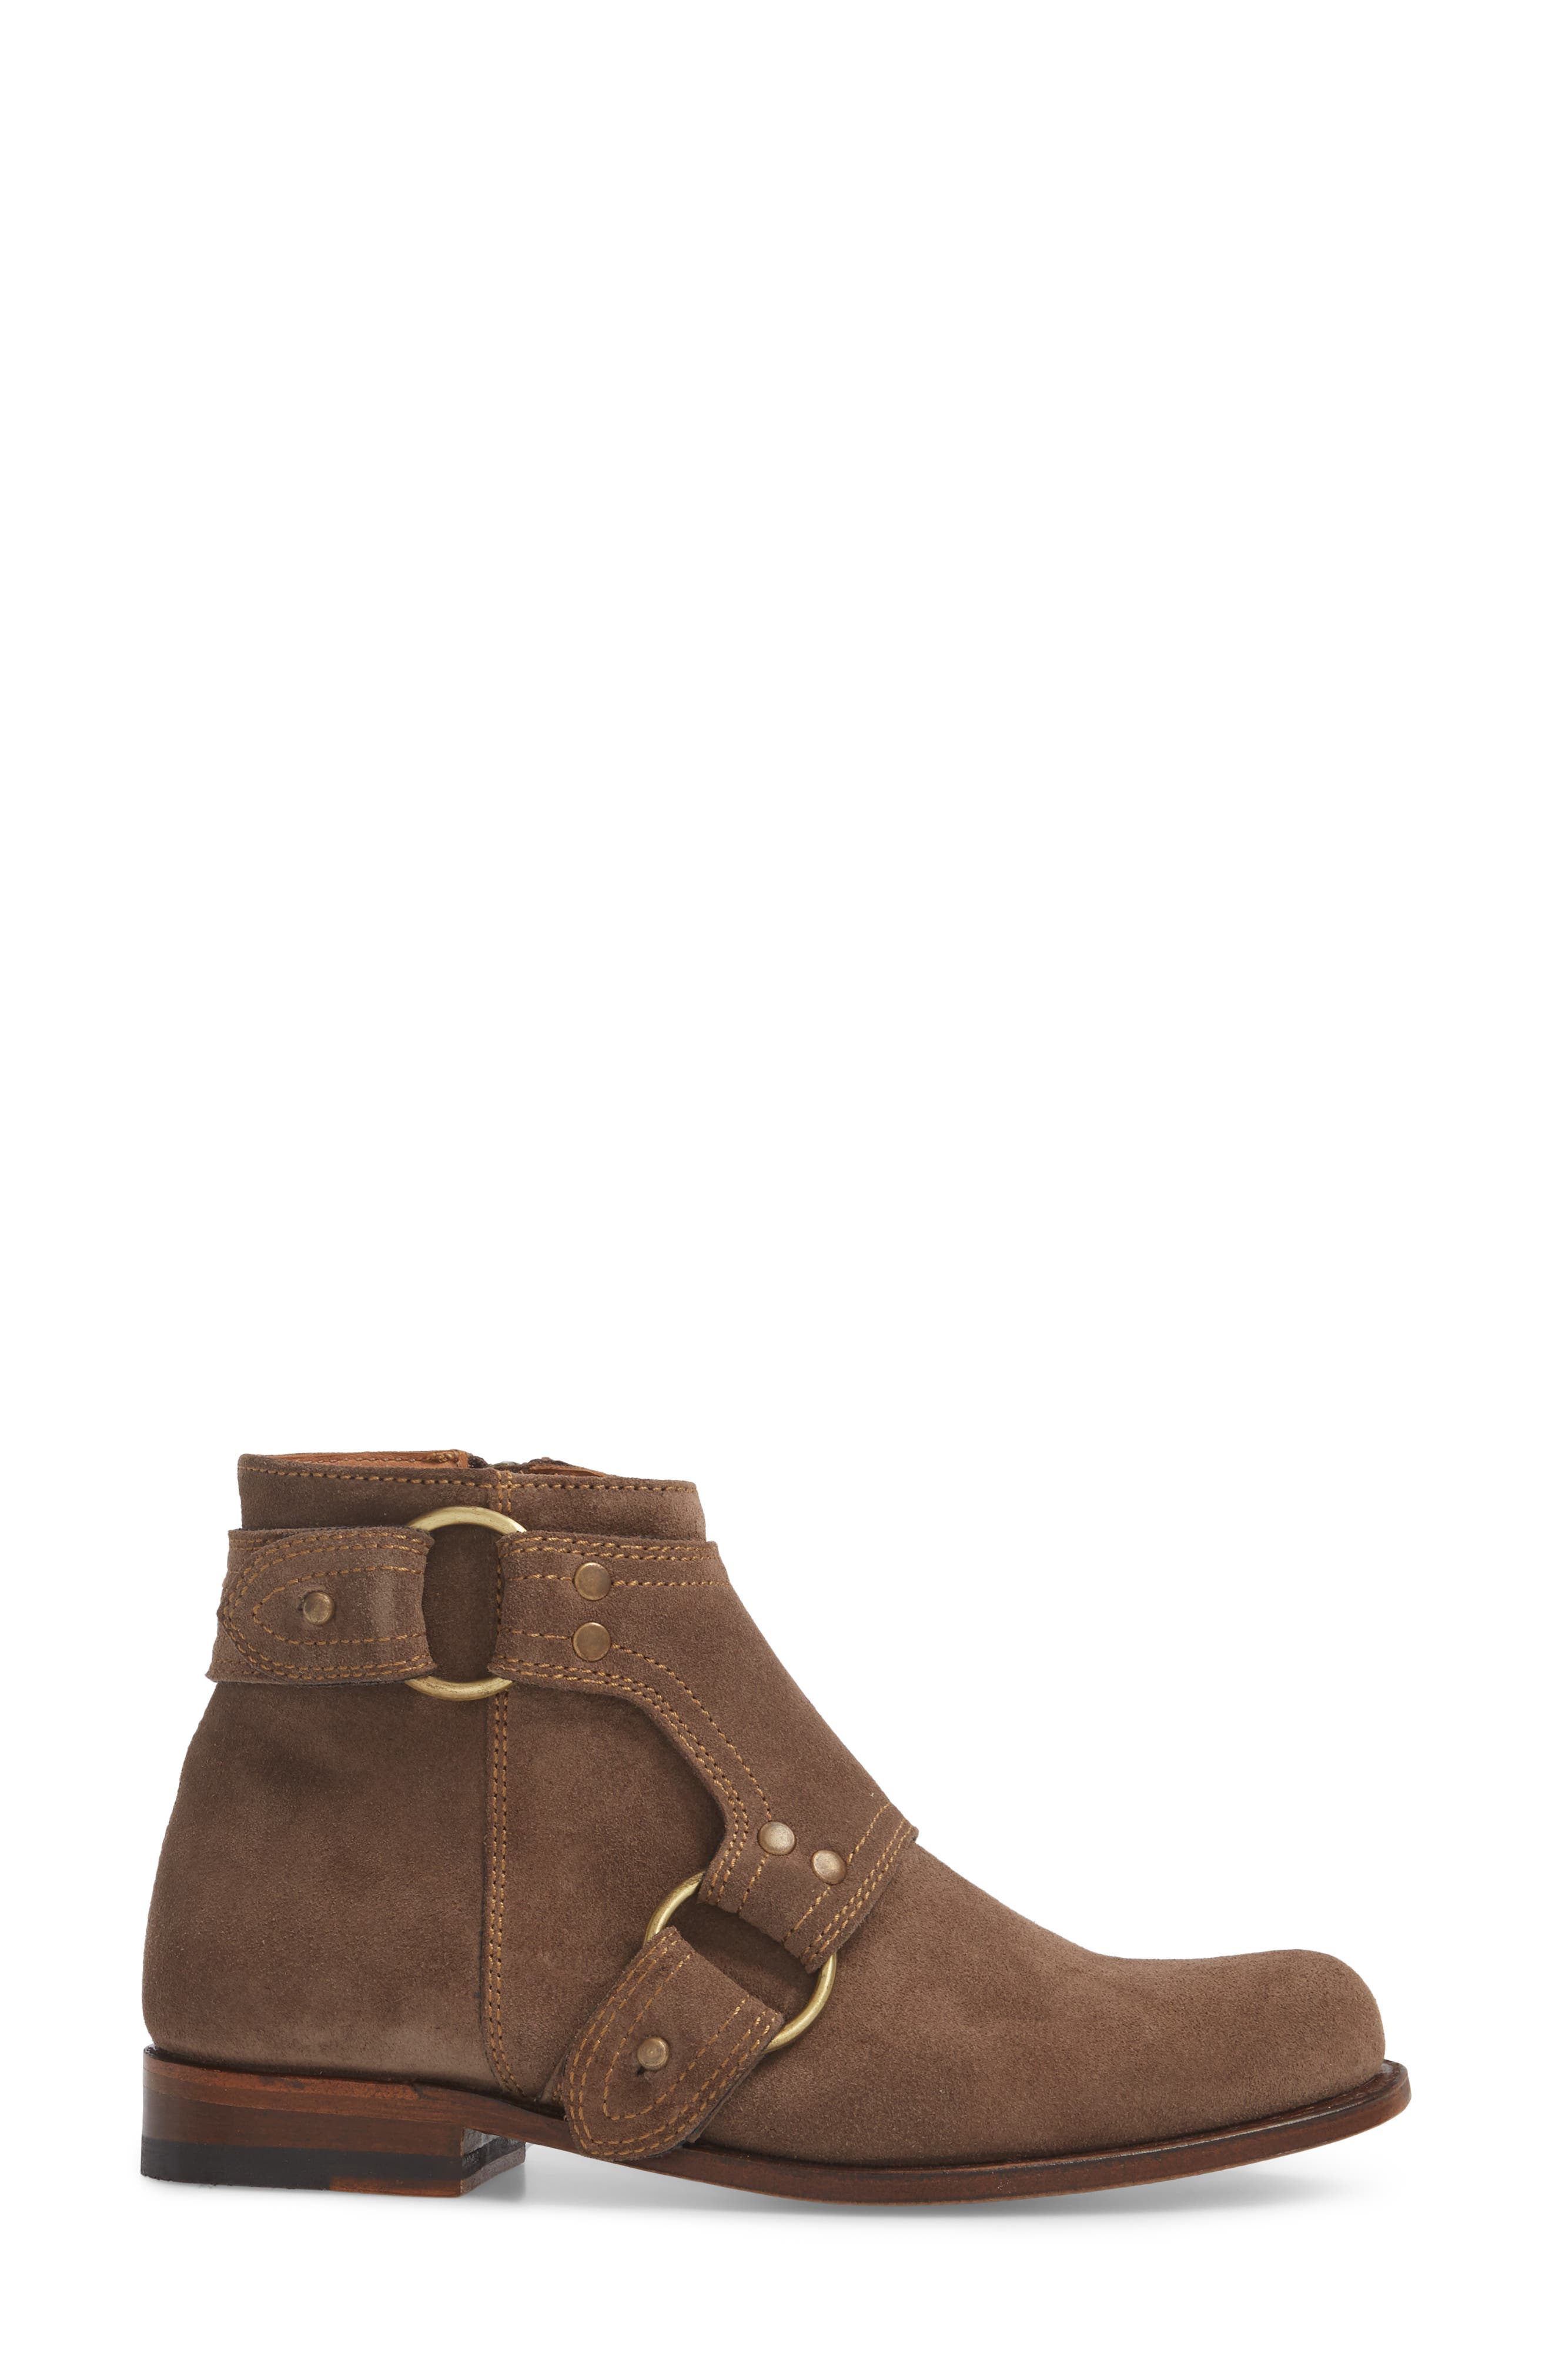 Two24 by Ariat Paloma Bootie,                             Alternate thumbnail 3, color,